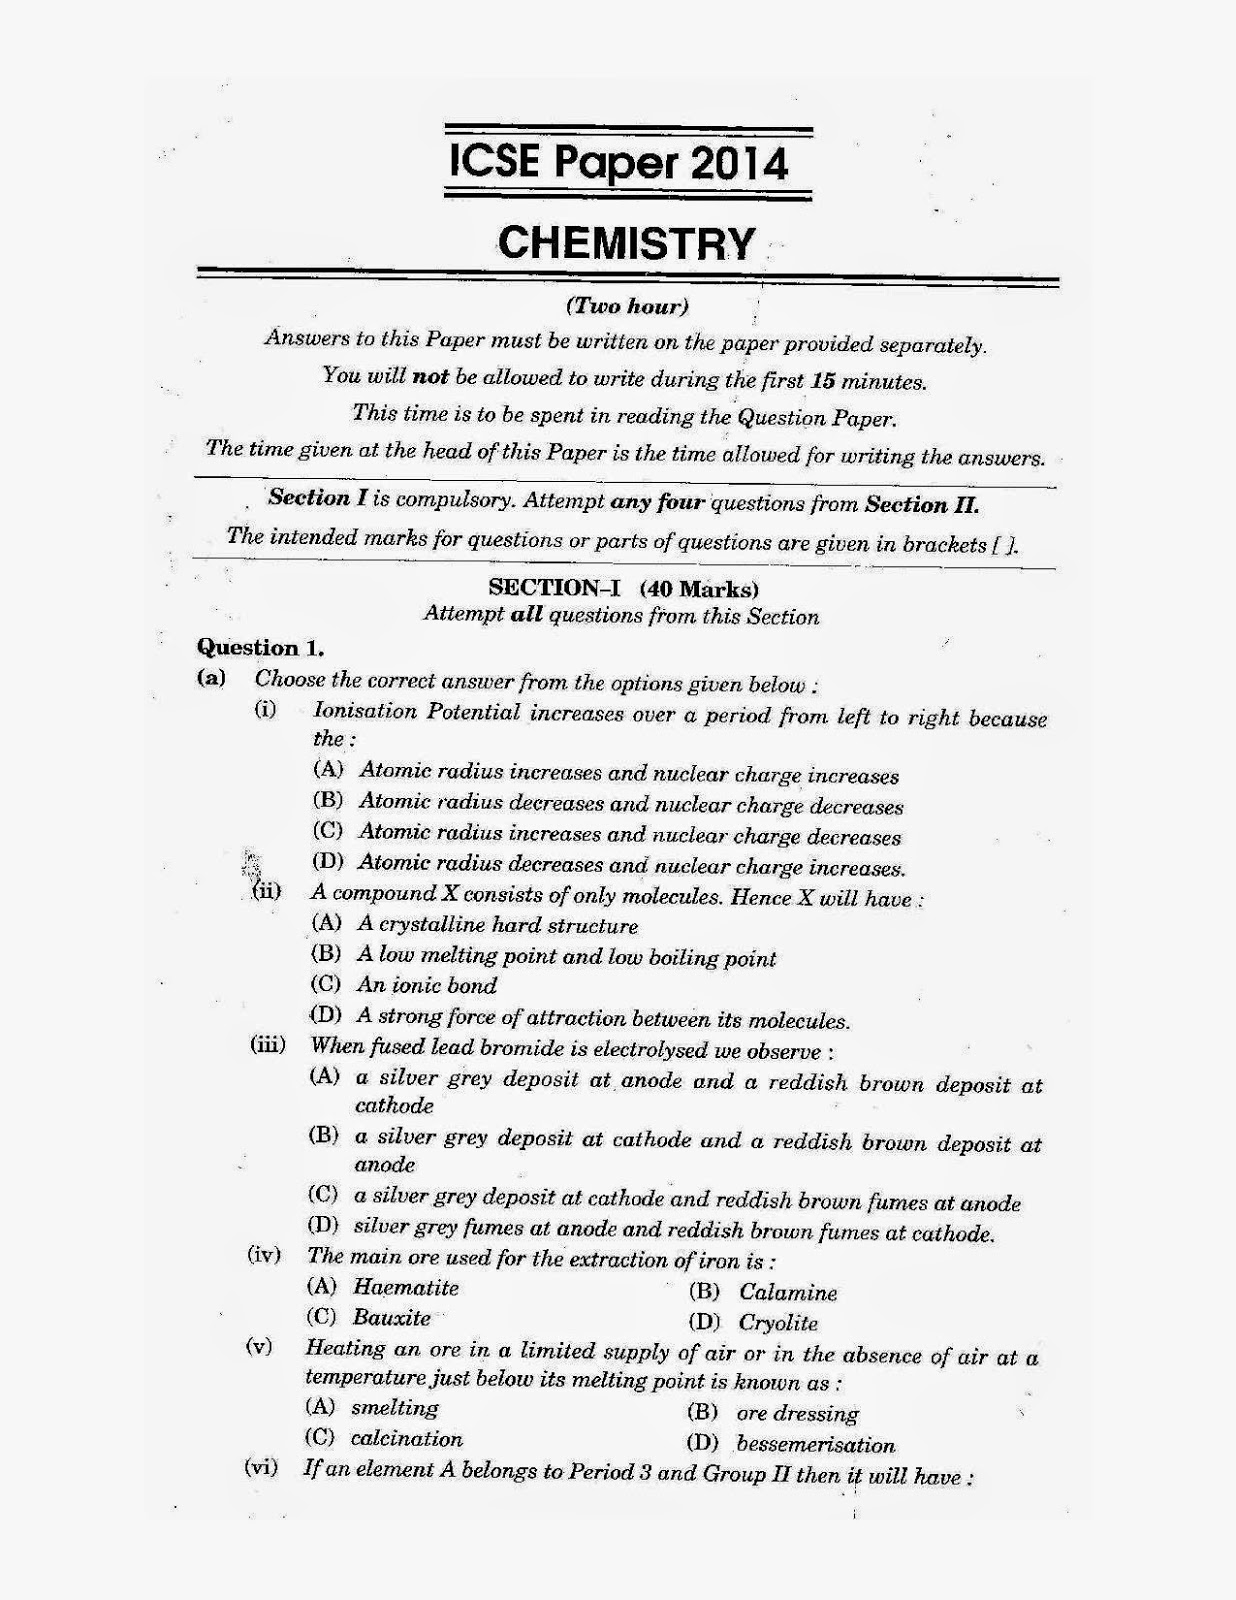 icse science chemistry solved question paper years icse class 10th chemistry solved question paper 2014